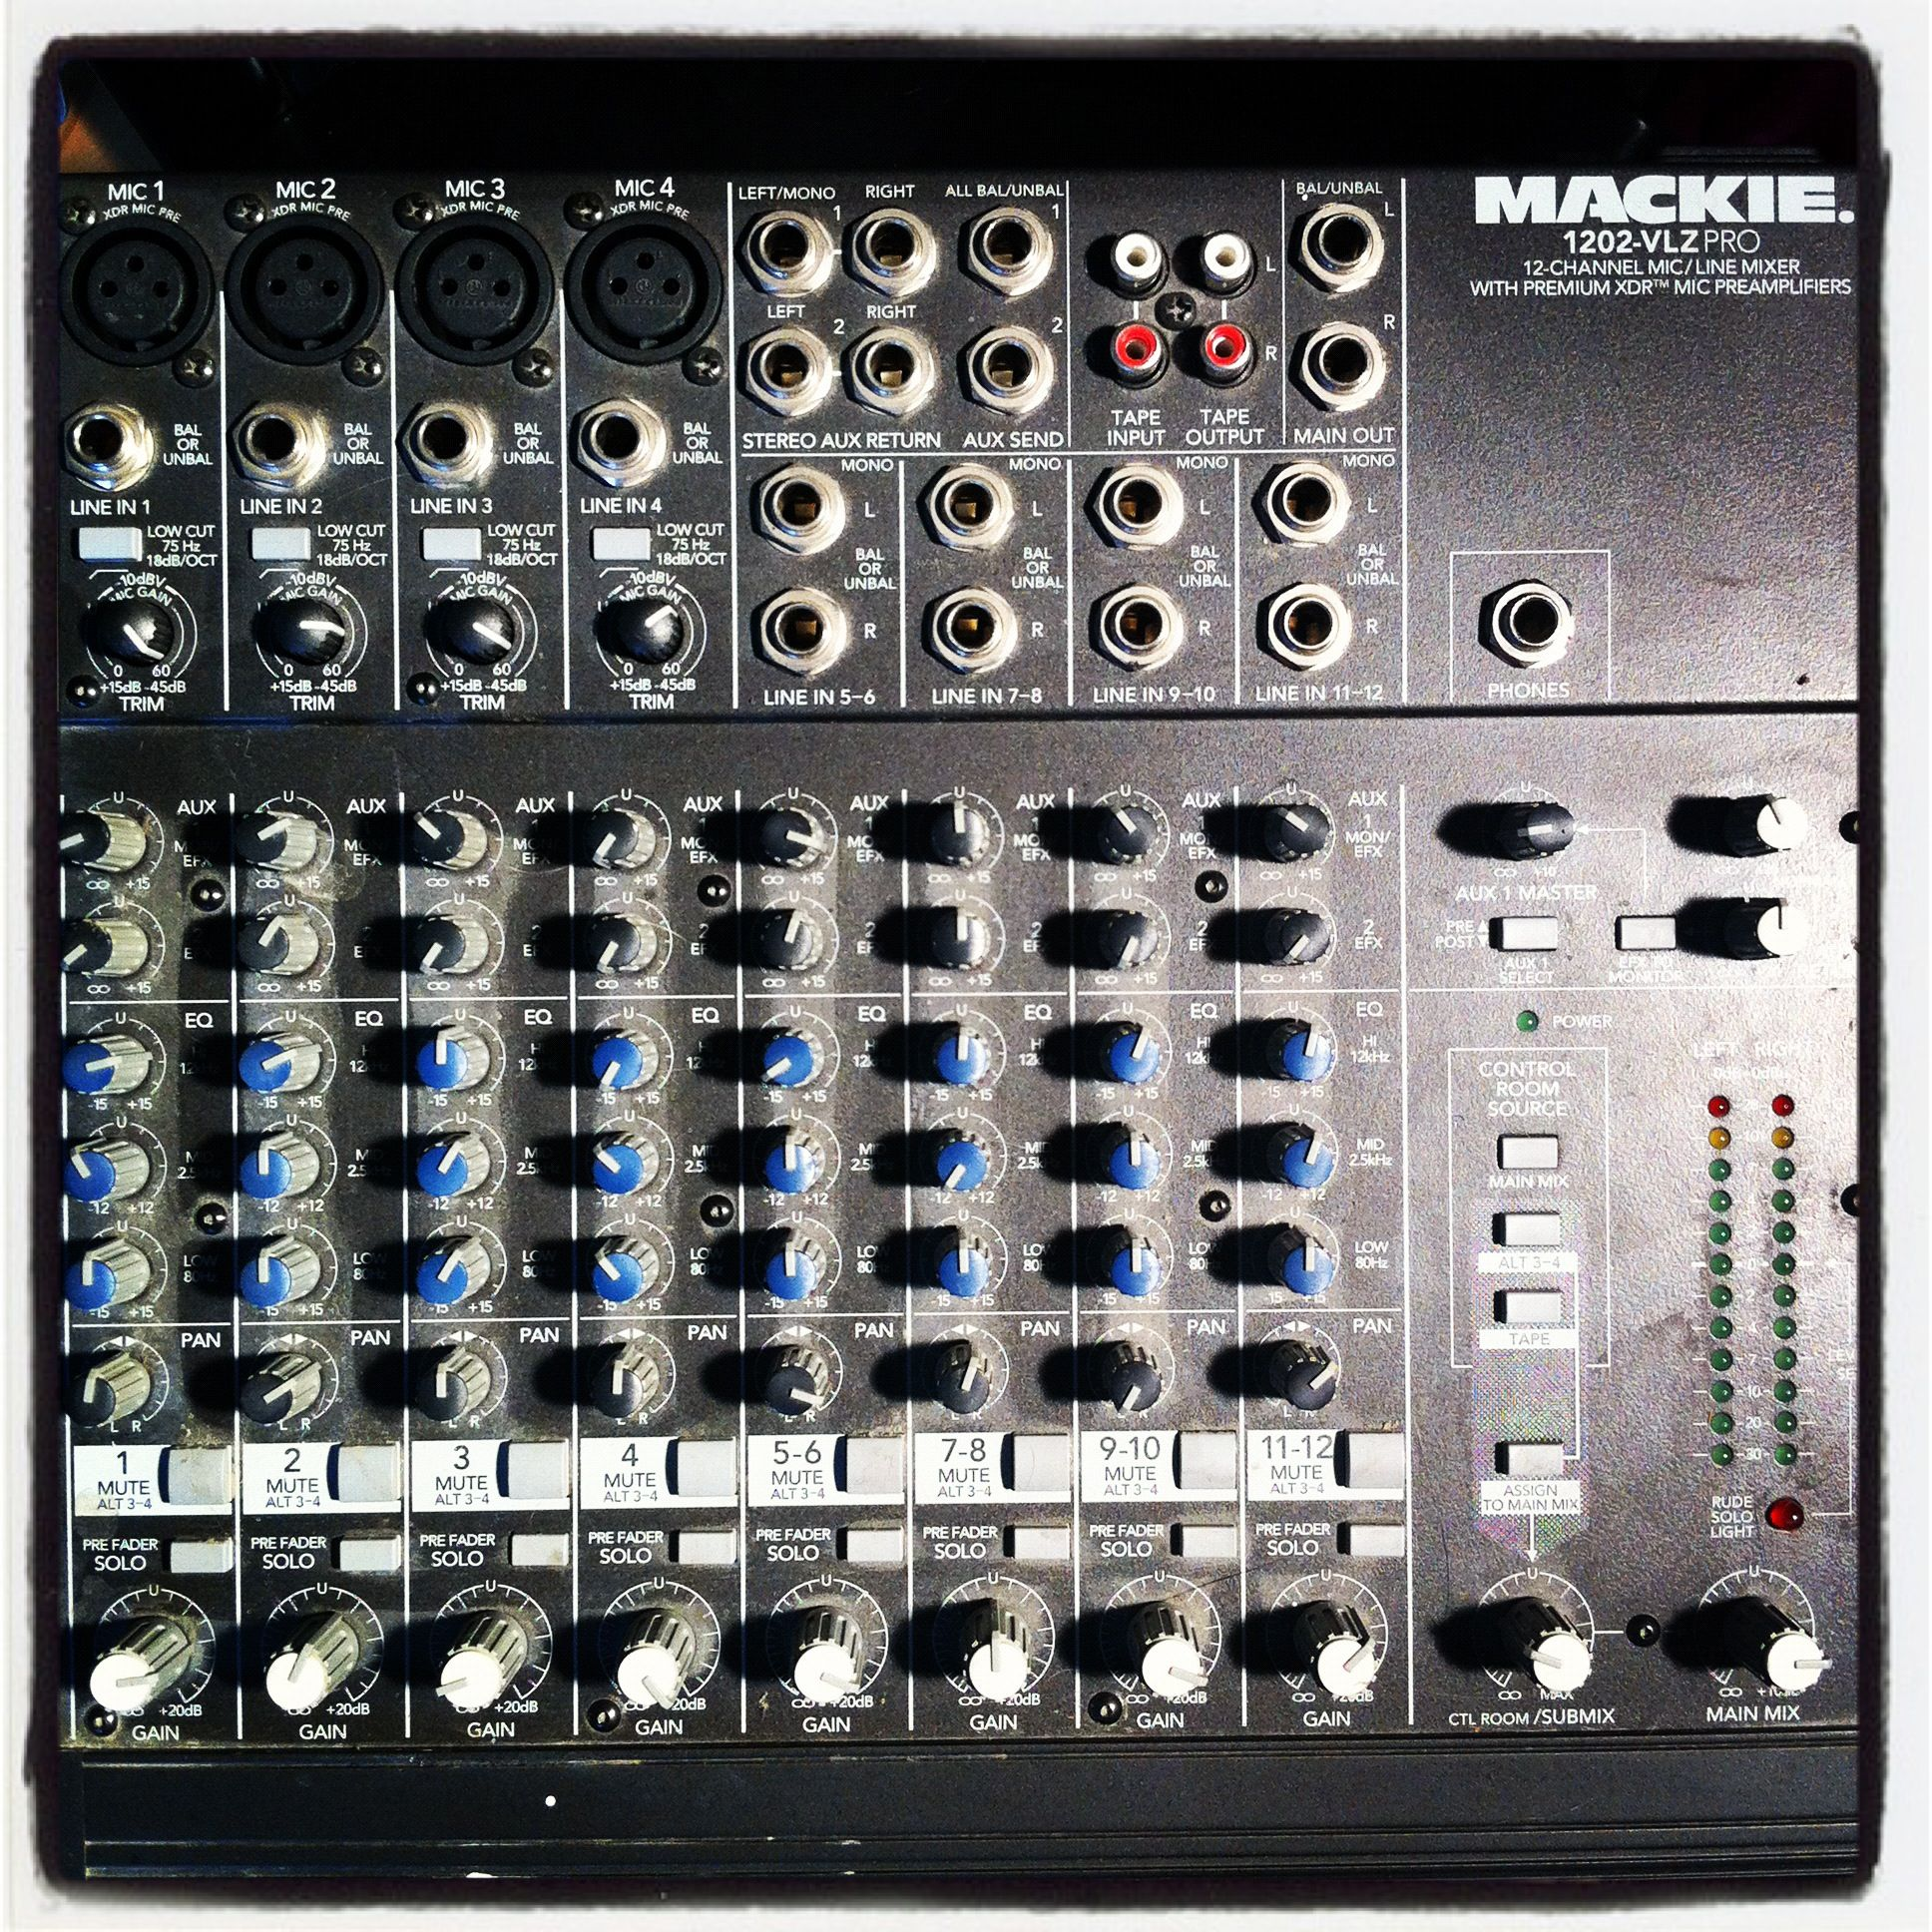 mackie 1202 vlz pro 12 channel mic line mixer products i love mixer line und channel. Black Bedroom Furniture Sets. Home Design Ideas